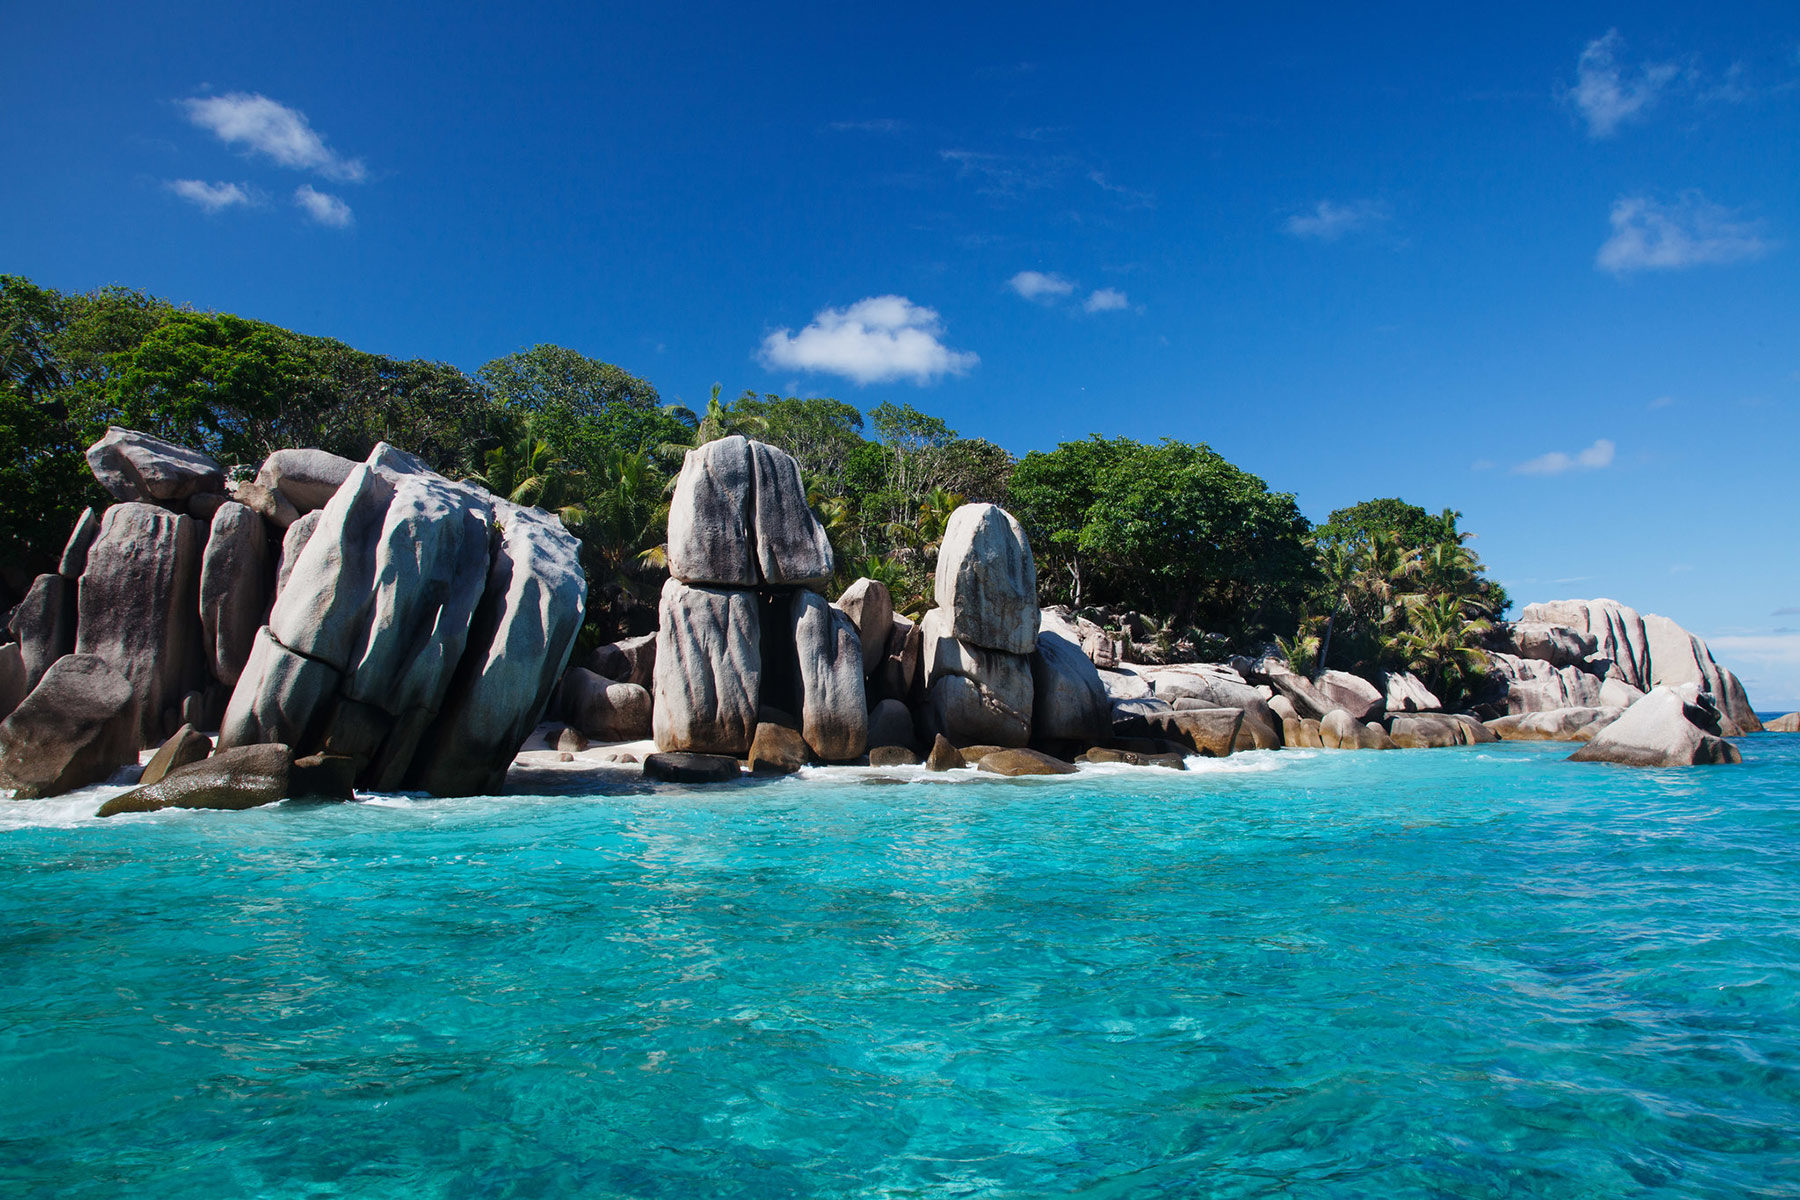 Seychelles. Photo credit: Jean-Marie-aHullot on Flickr.com